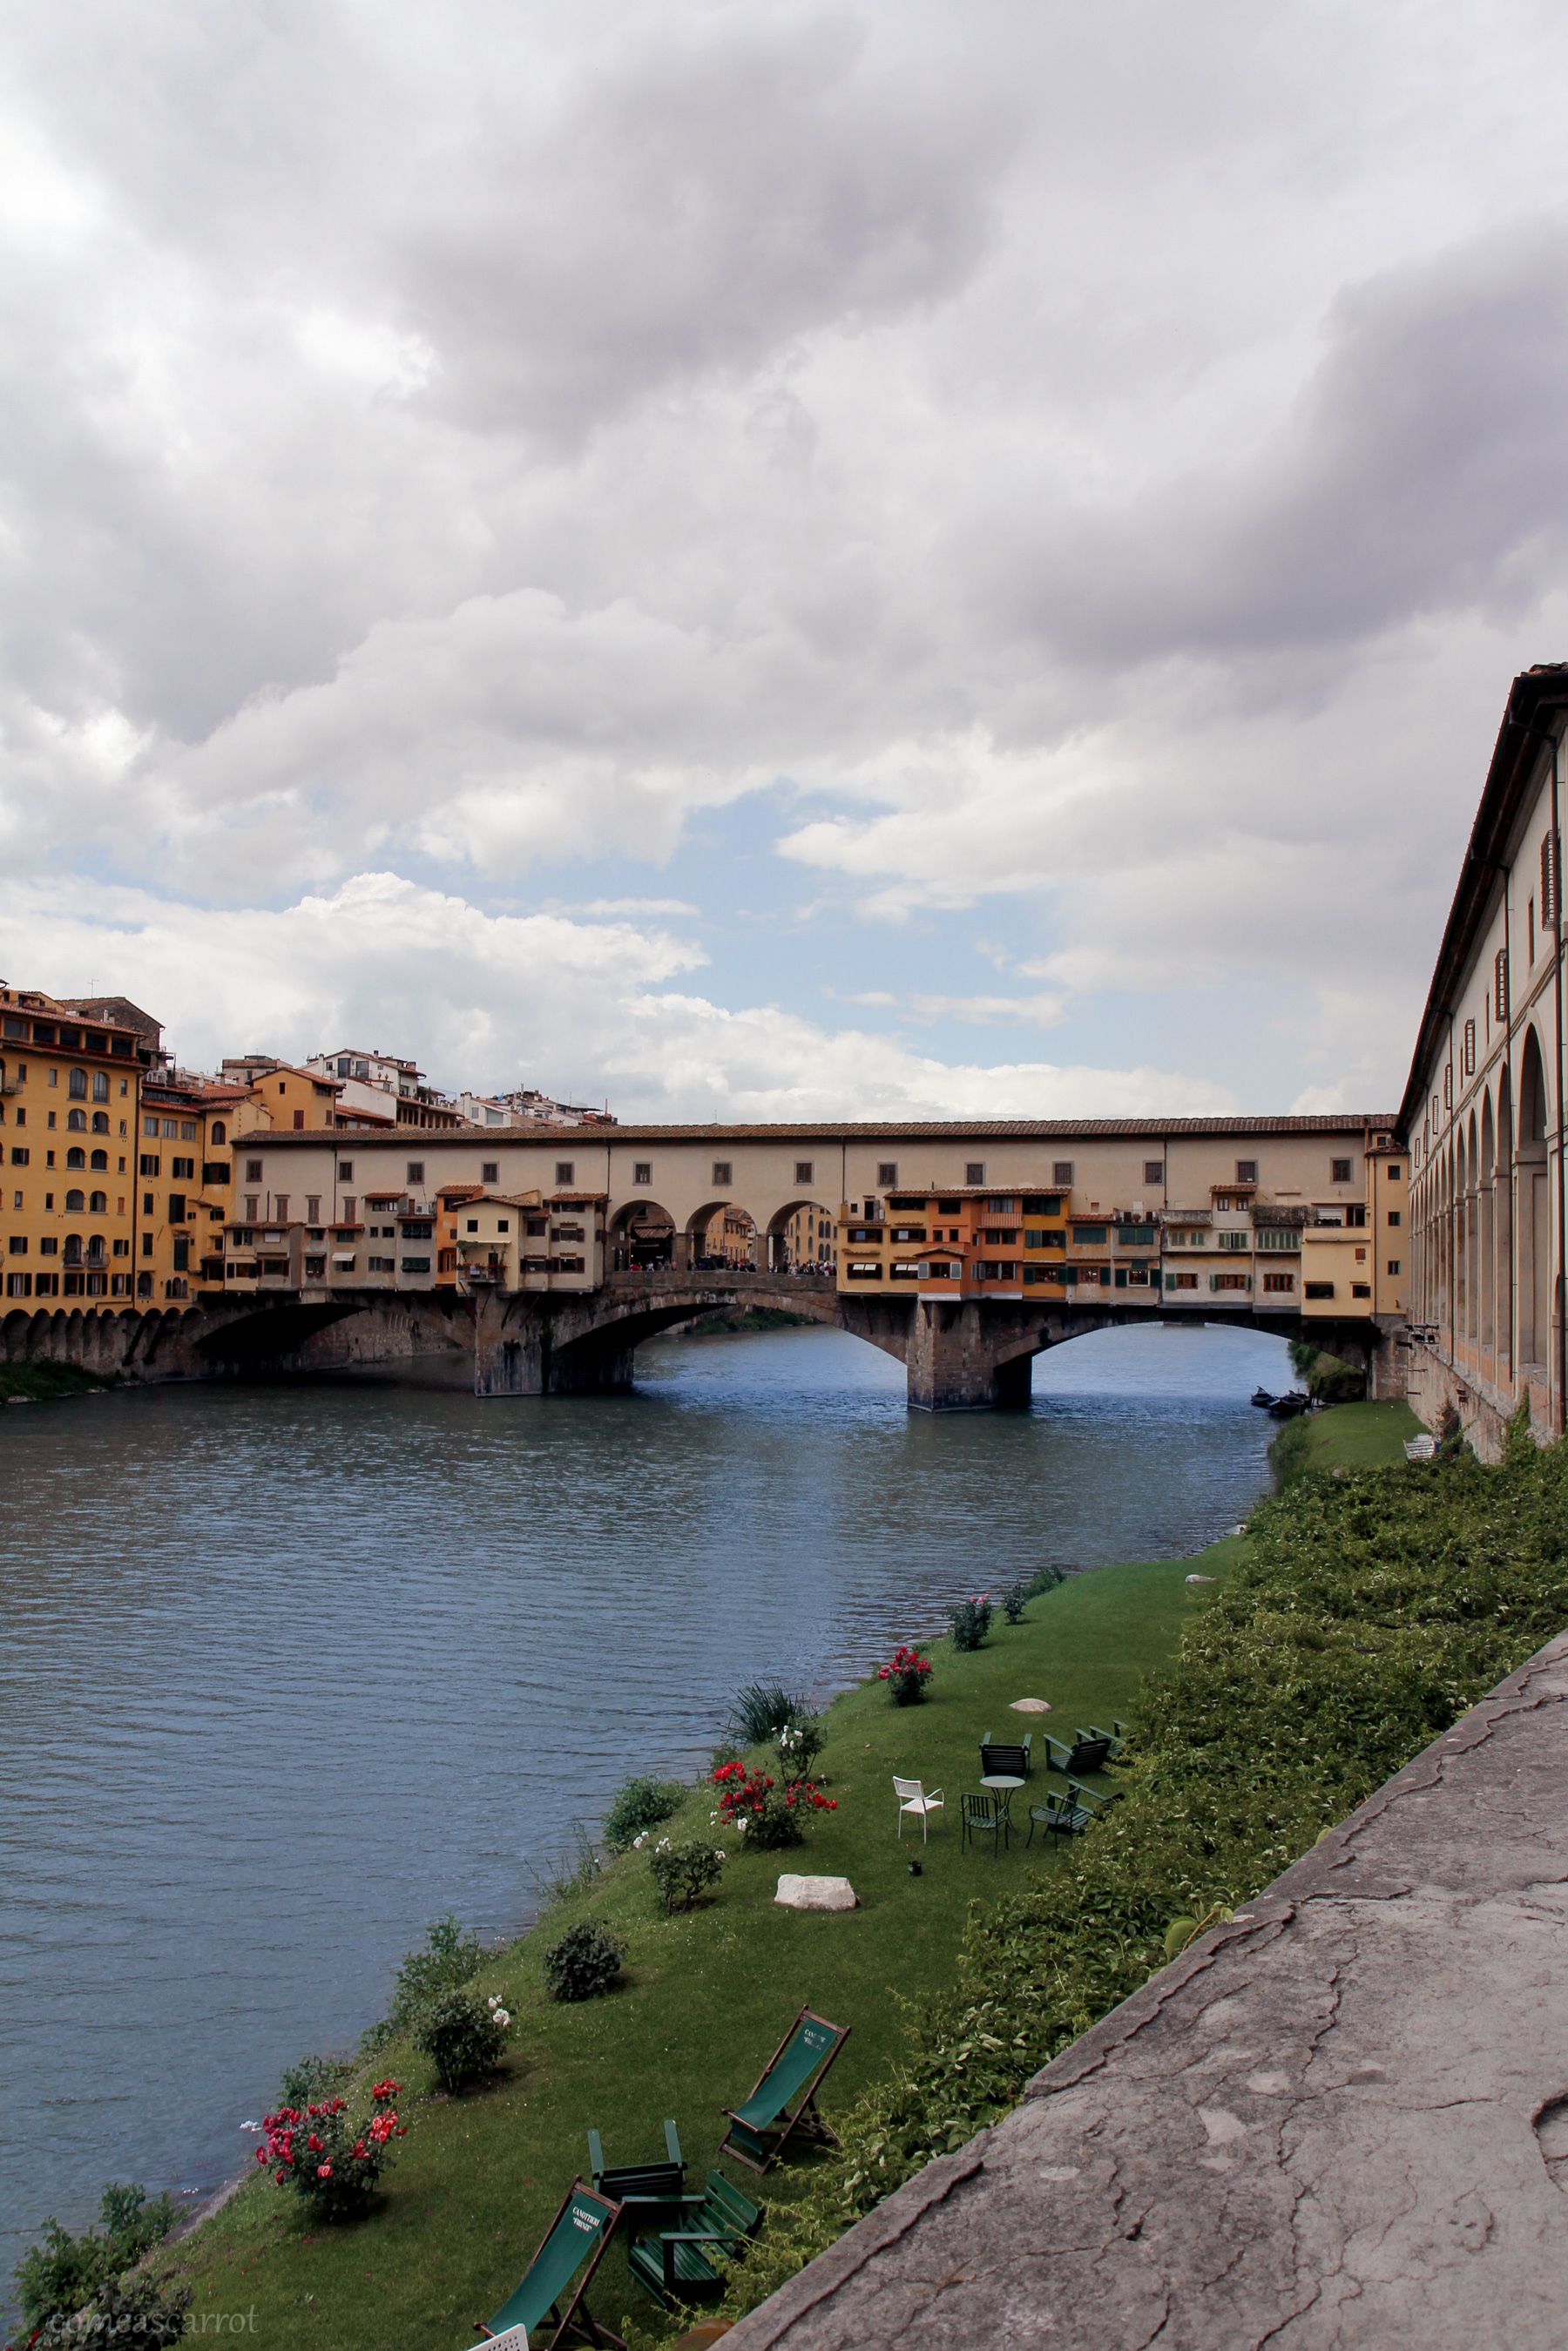 travel, florence, firenze, guide, tipps, florenz, italy, italien, city, fashionblog, fashion blog, blogger, fashionblogger, mode blog, deutschland, comeascarrot, come as carrot, things, to do, arno, Ponte Vecchio